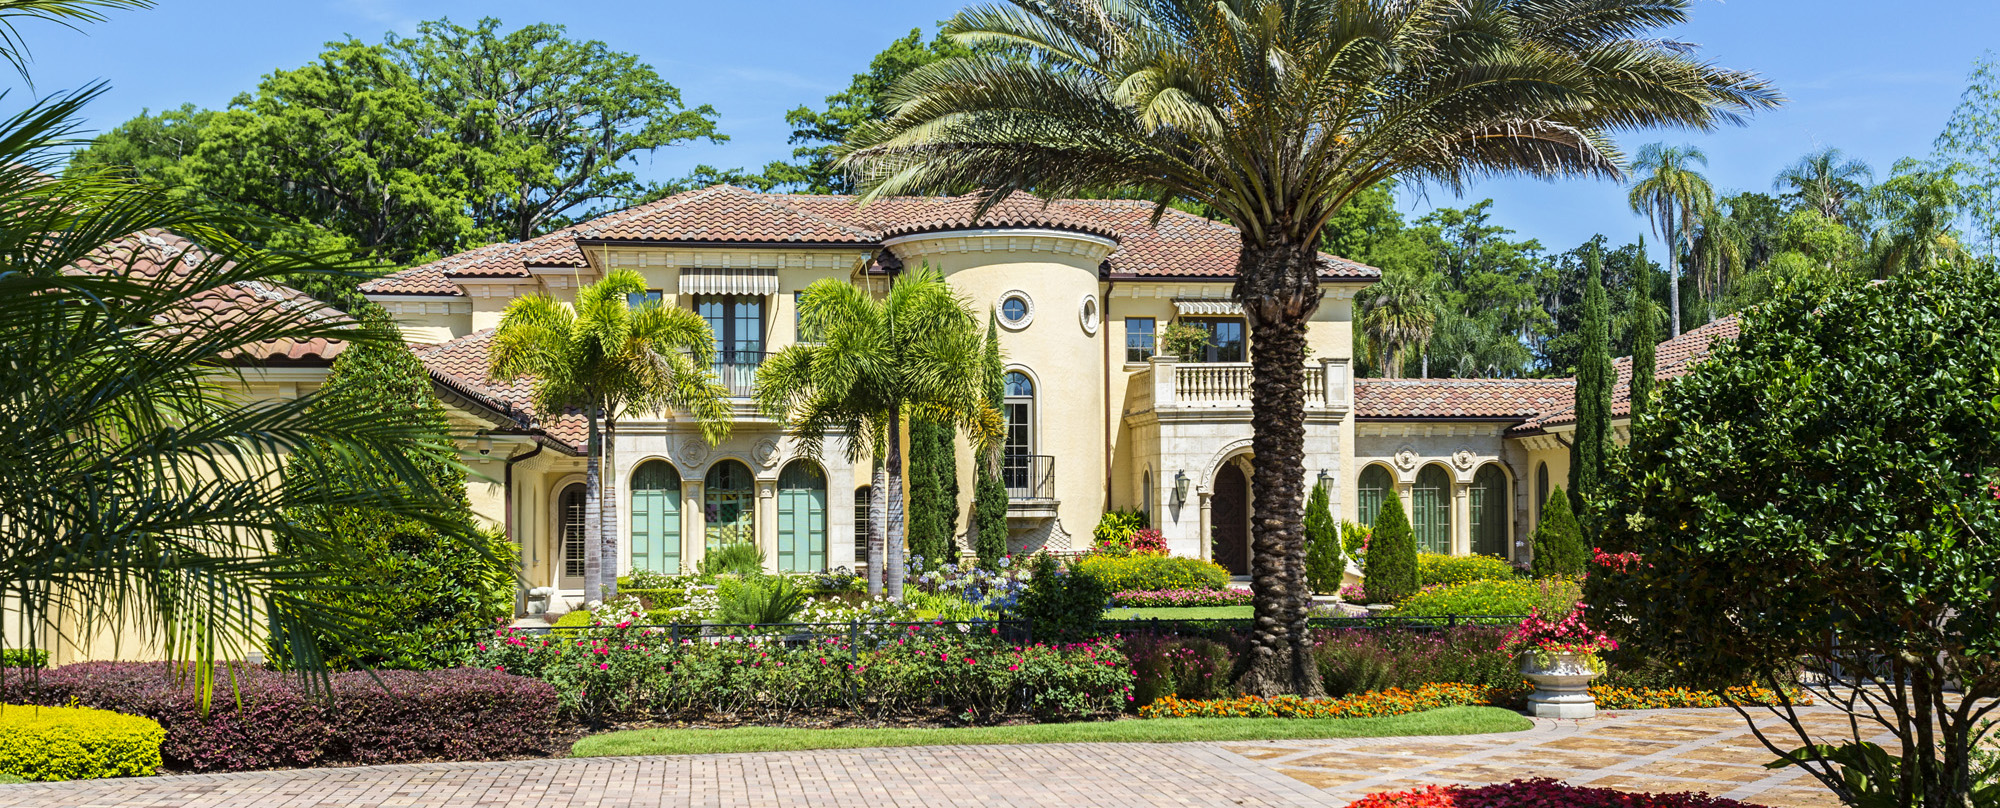 Importance of Choosing Quality Landscaping Companies in West Palm Beach for Your Property